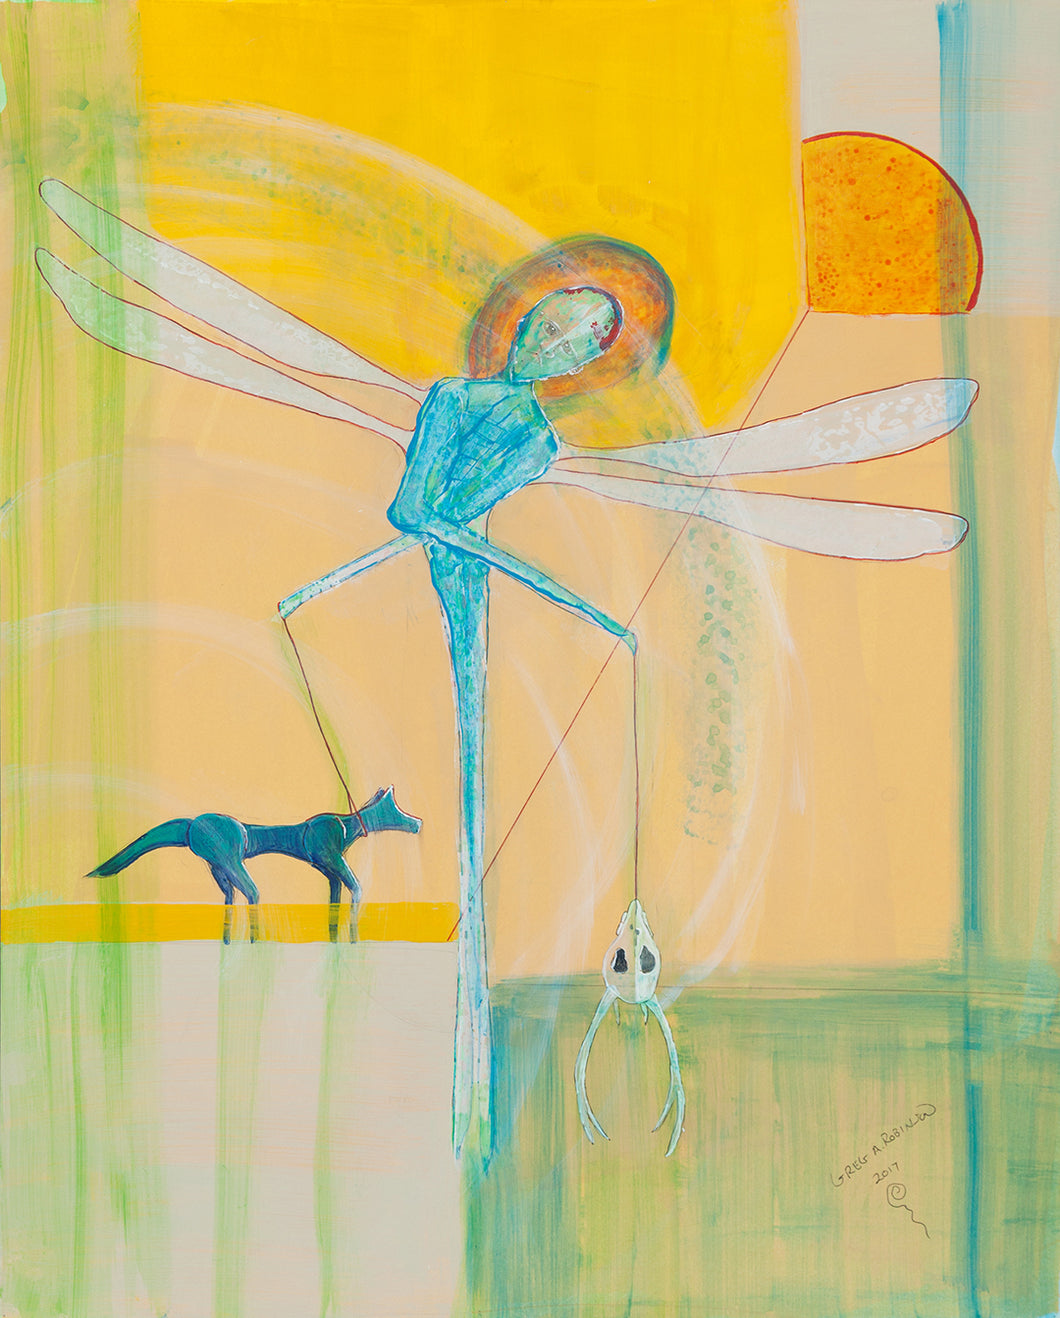 Dragonfly's Afternoon, 2018, Greg A. Robinson